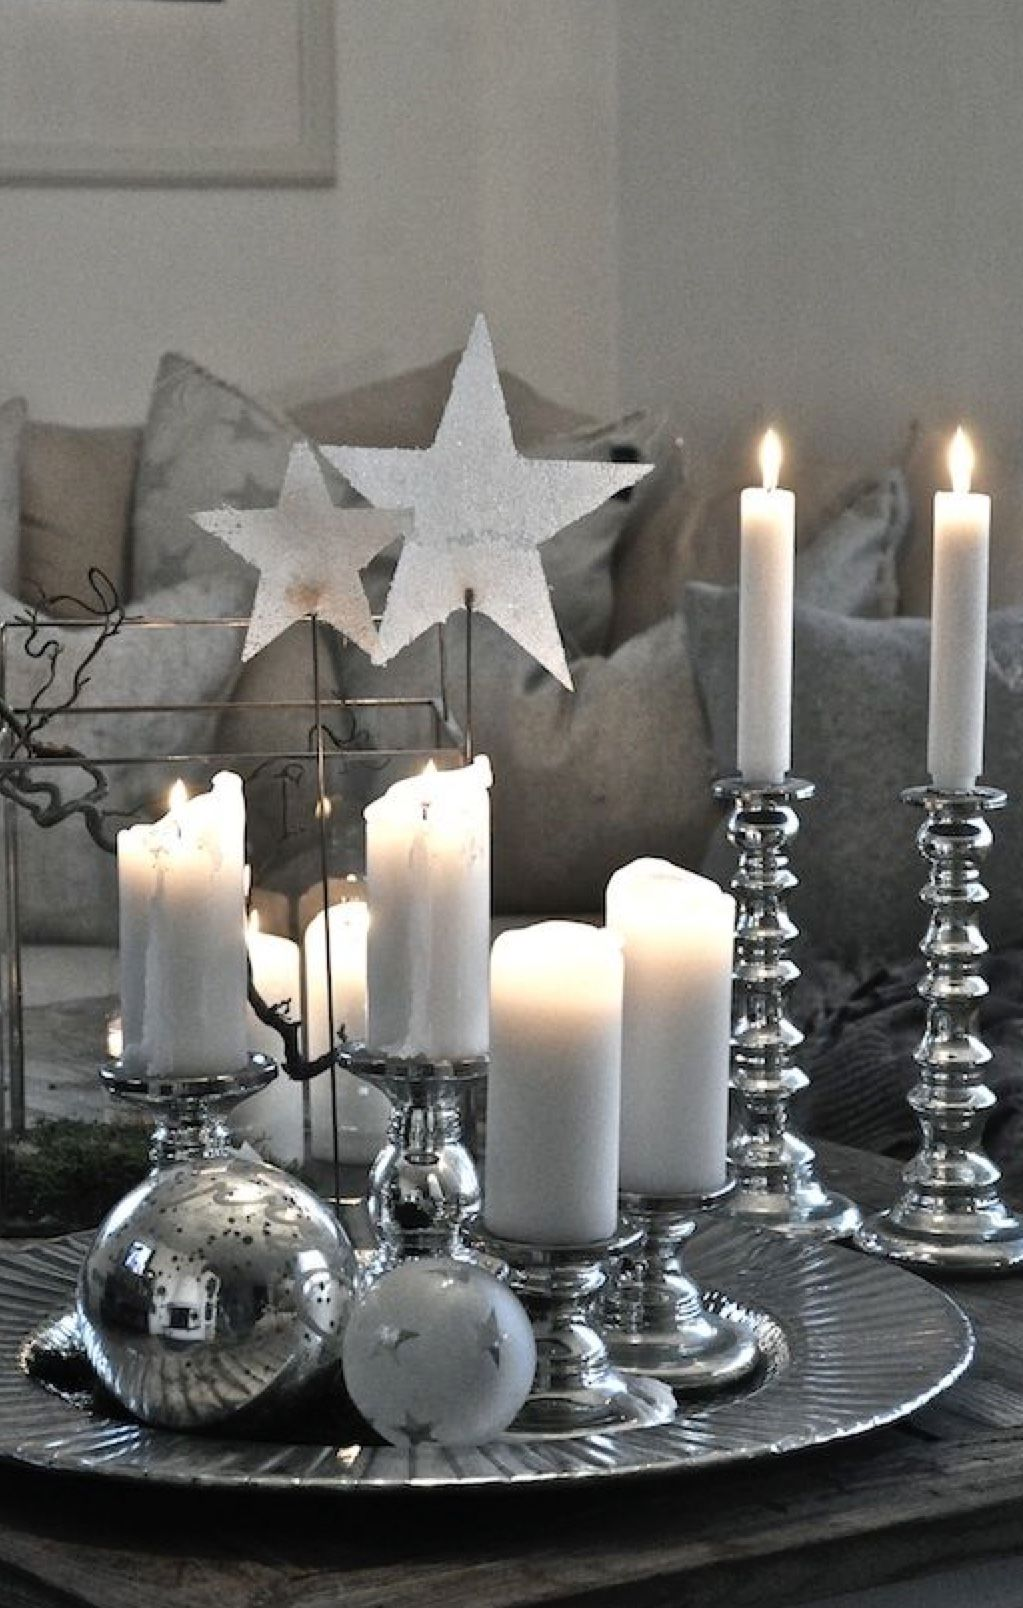 Pin By Gail Steven On Silver Grey White Christmas Decor Christmas Tree Table Decorations Silver Christmas